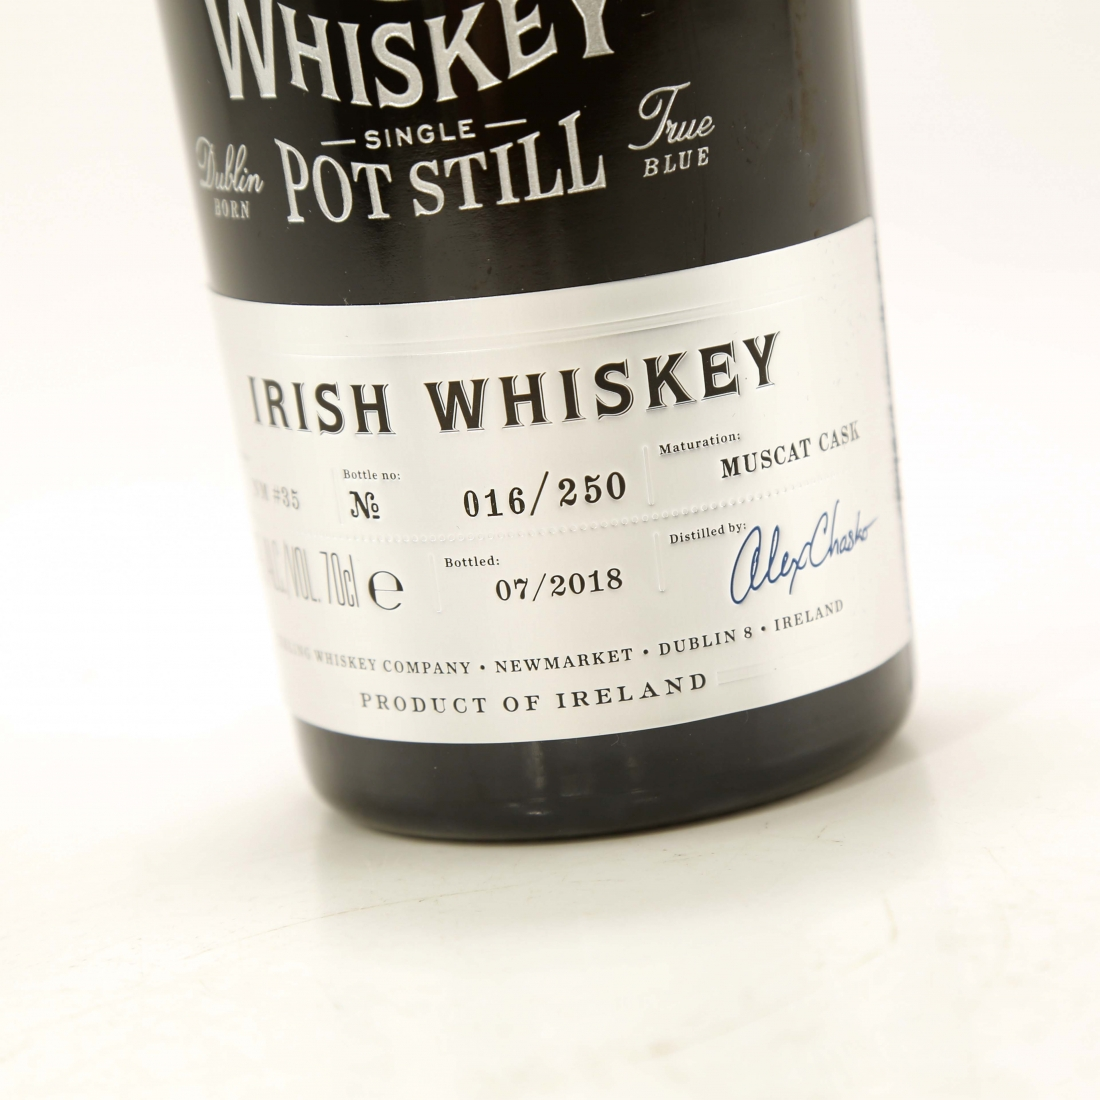 Teeling Celebratory Single Pot Still Whiskey / Bottle #016